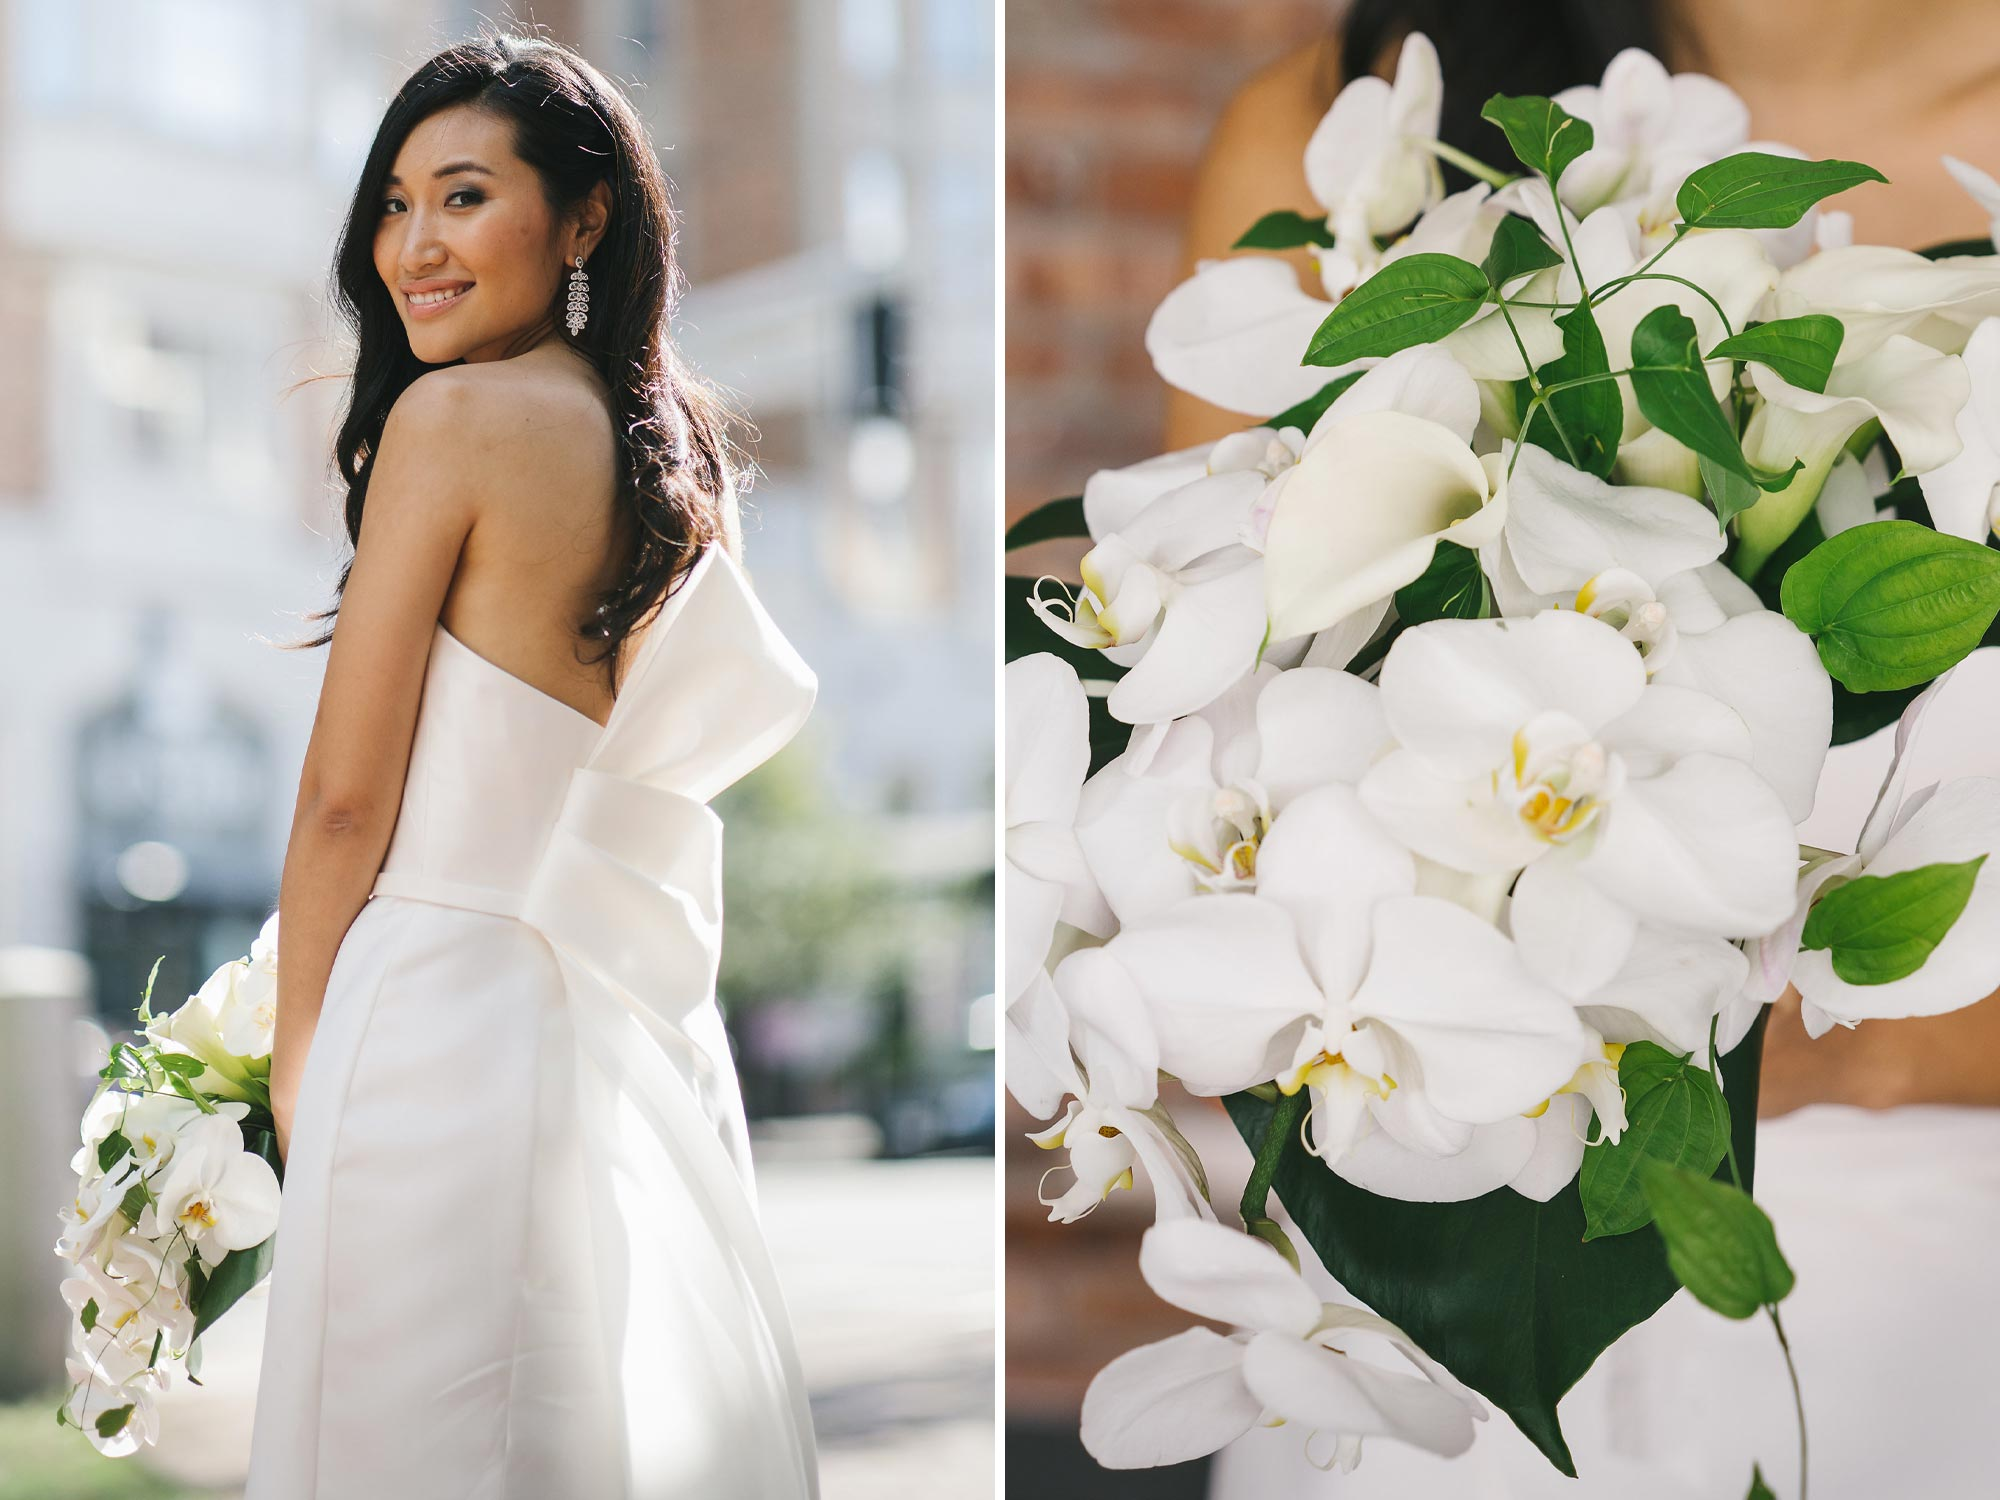 Dramatic Bow Wedding Dress with Orchid Bouquet